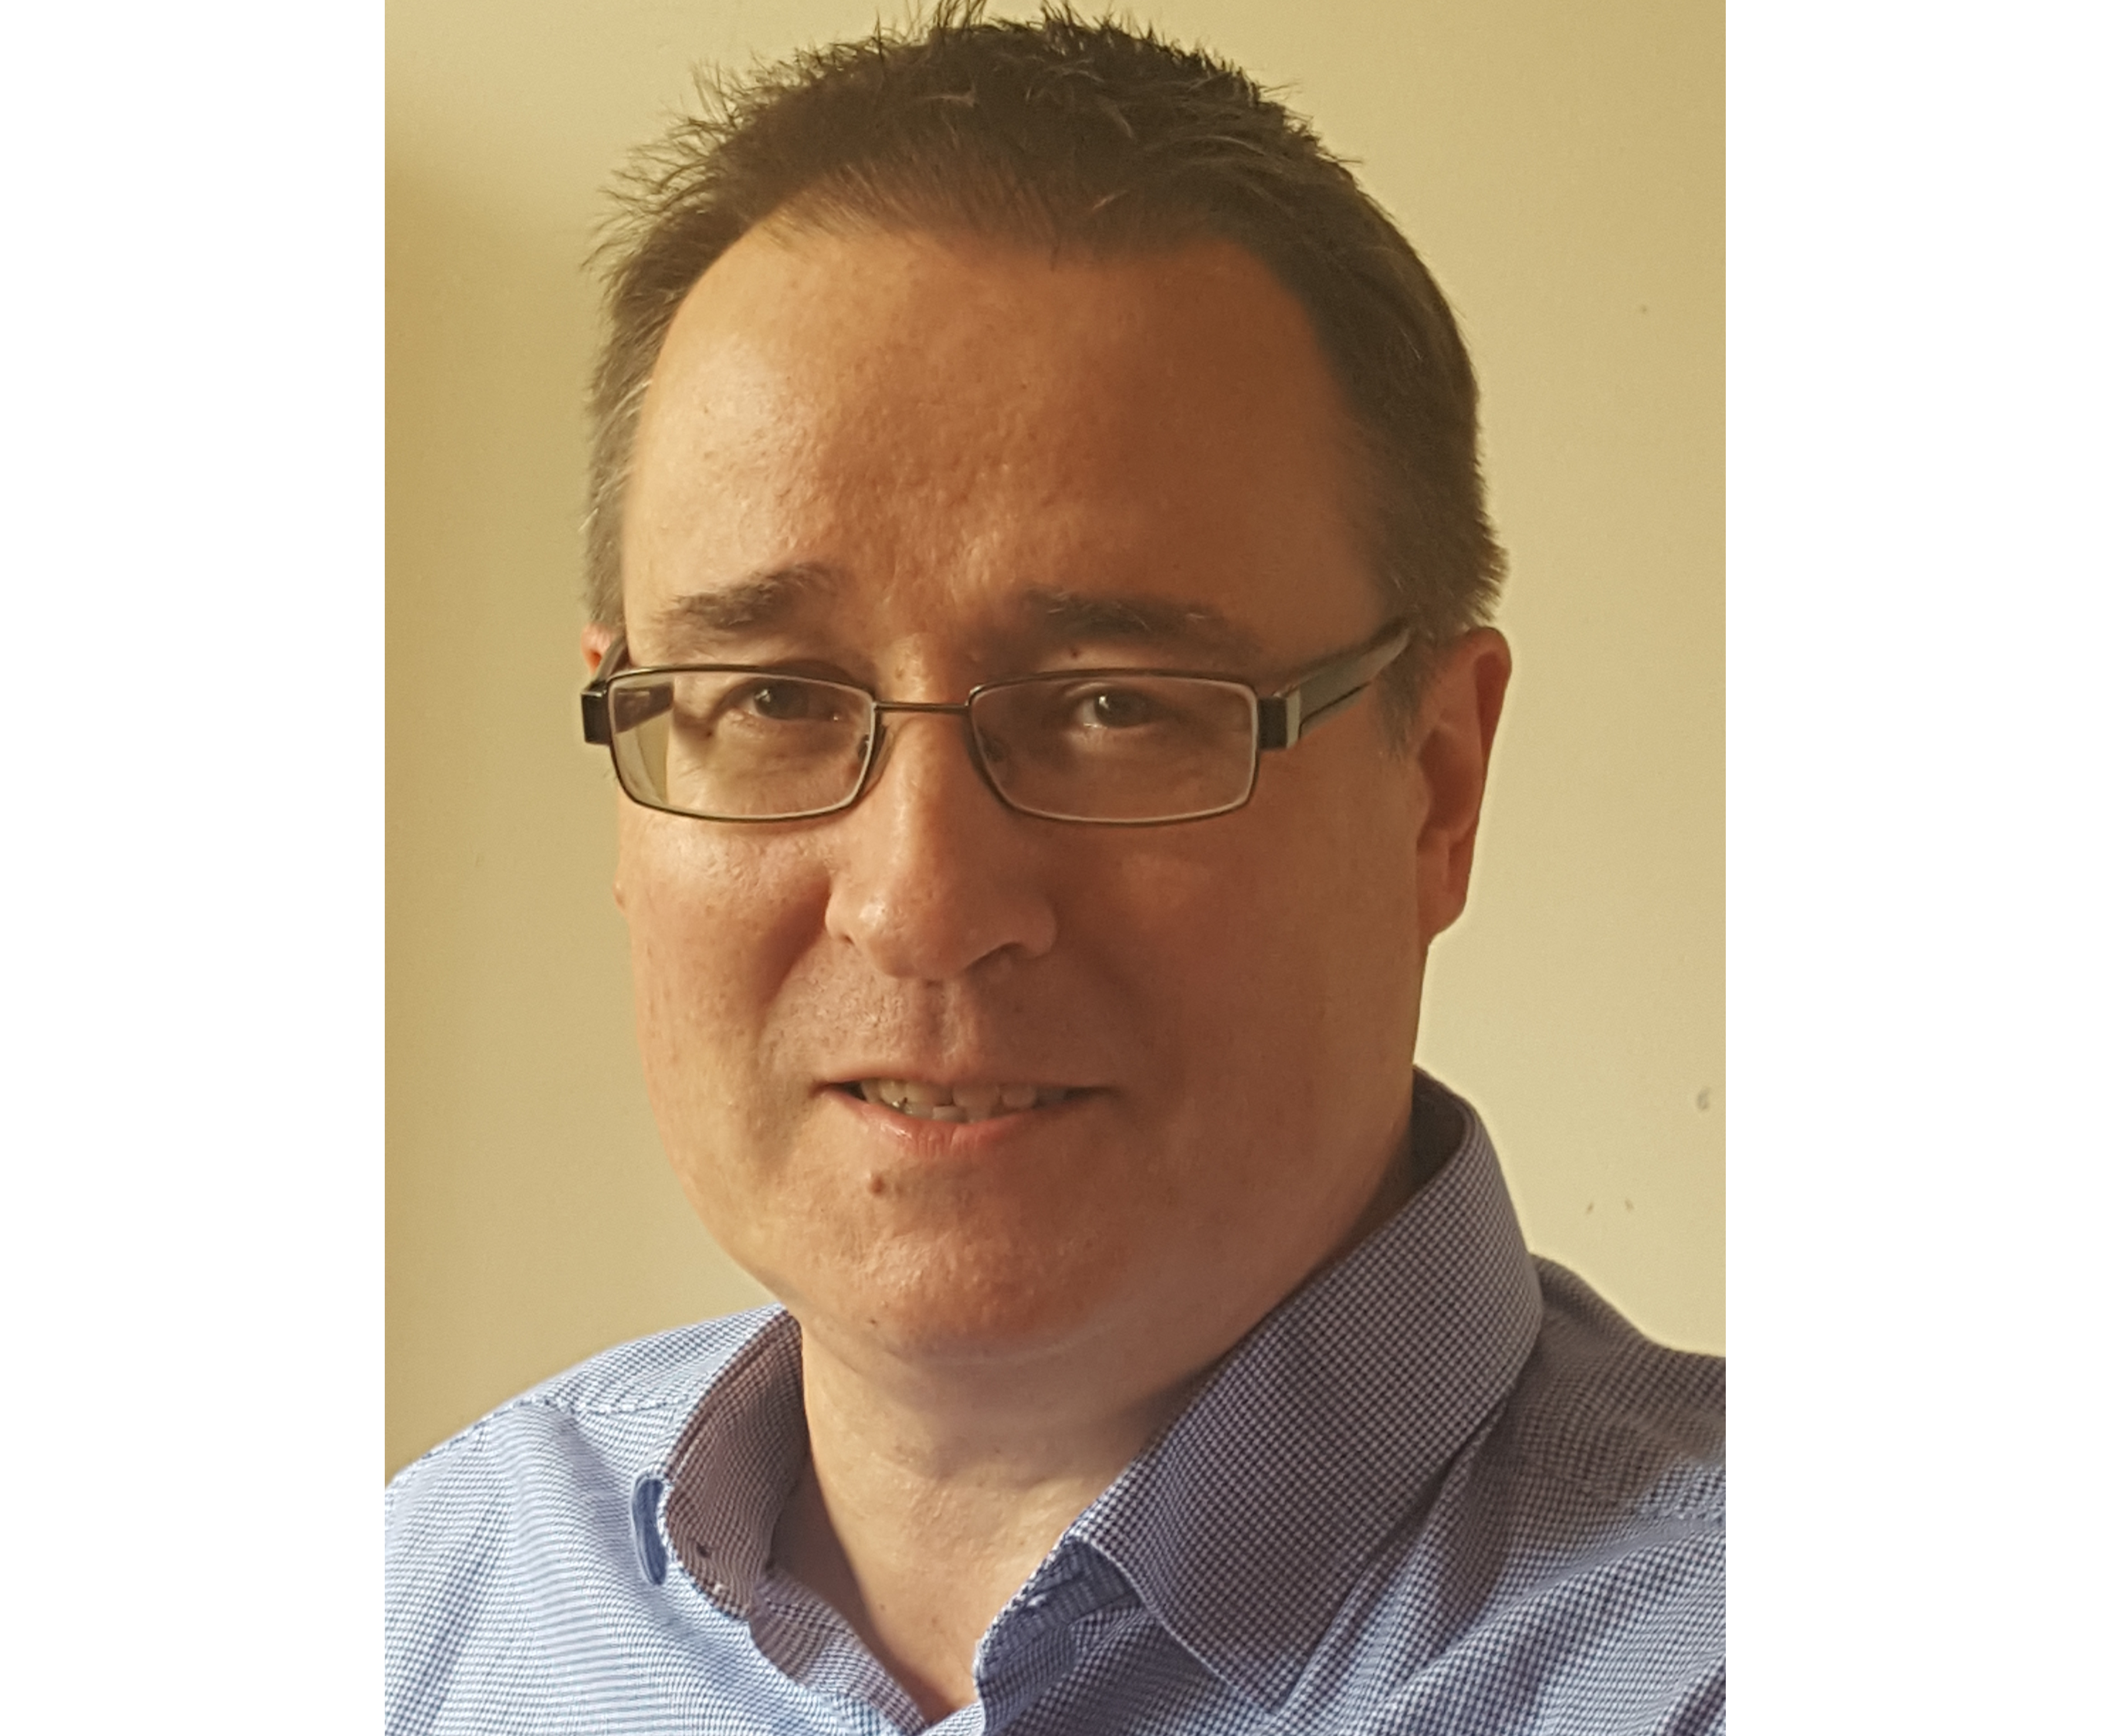 CKF Systems welcomes Steve Spencer as Technical Sales Manager